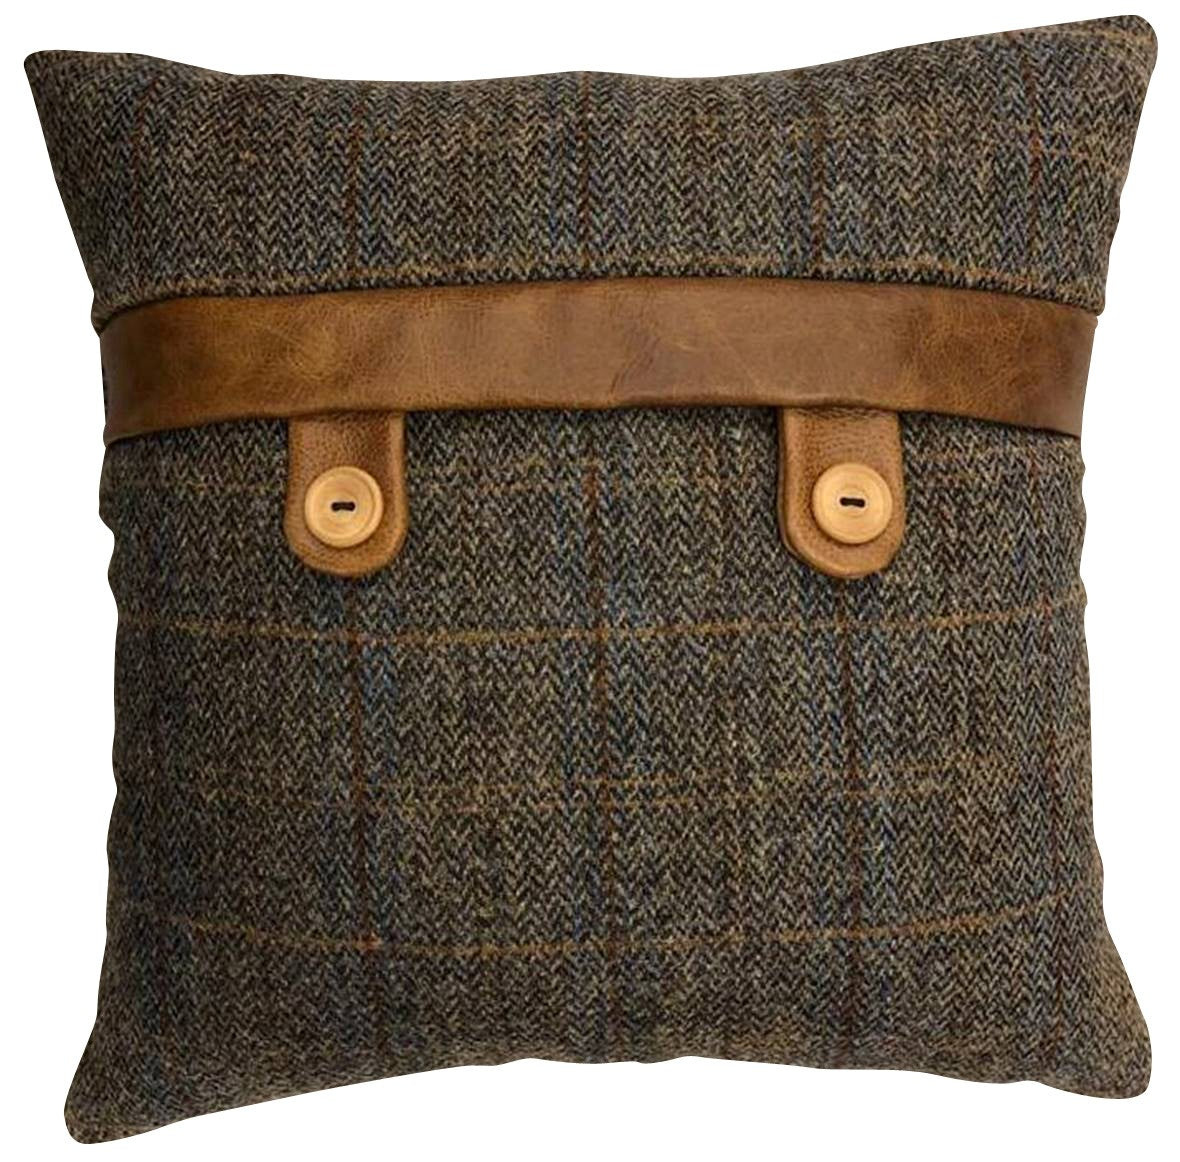 Harris Tweed and Leather Cushions-harris tweed cushions-Against The Grain Furniture-Belt and Button 40 cm square-Against The Grain Furniture